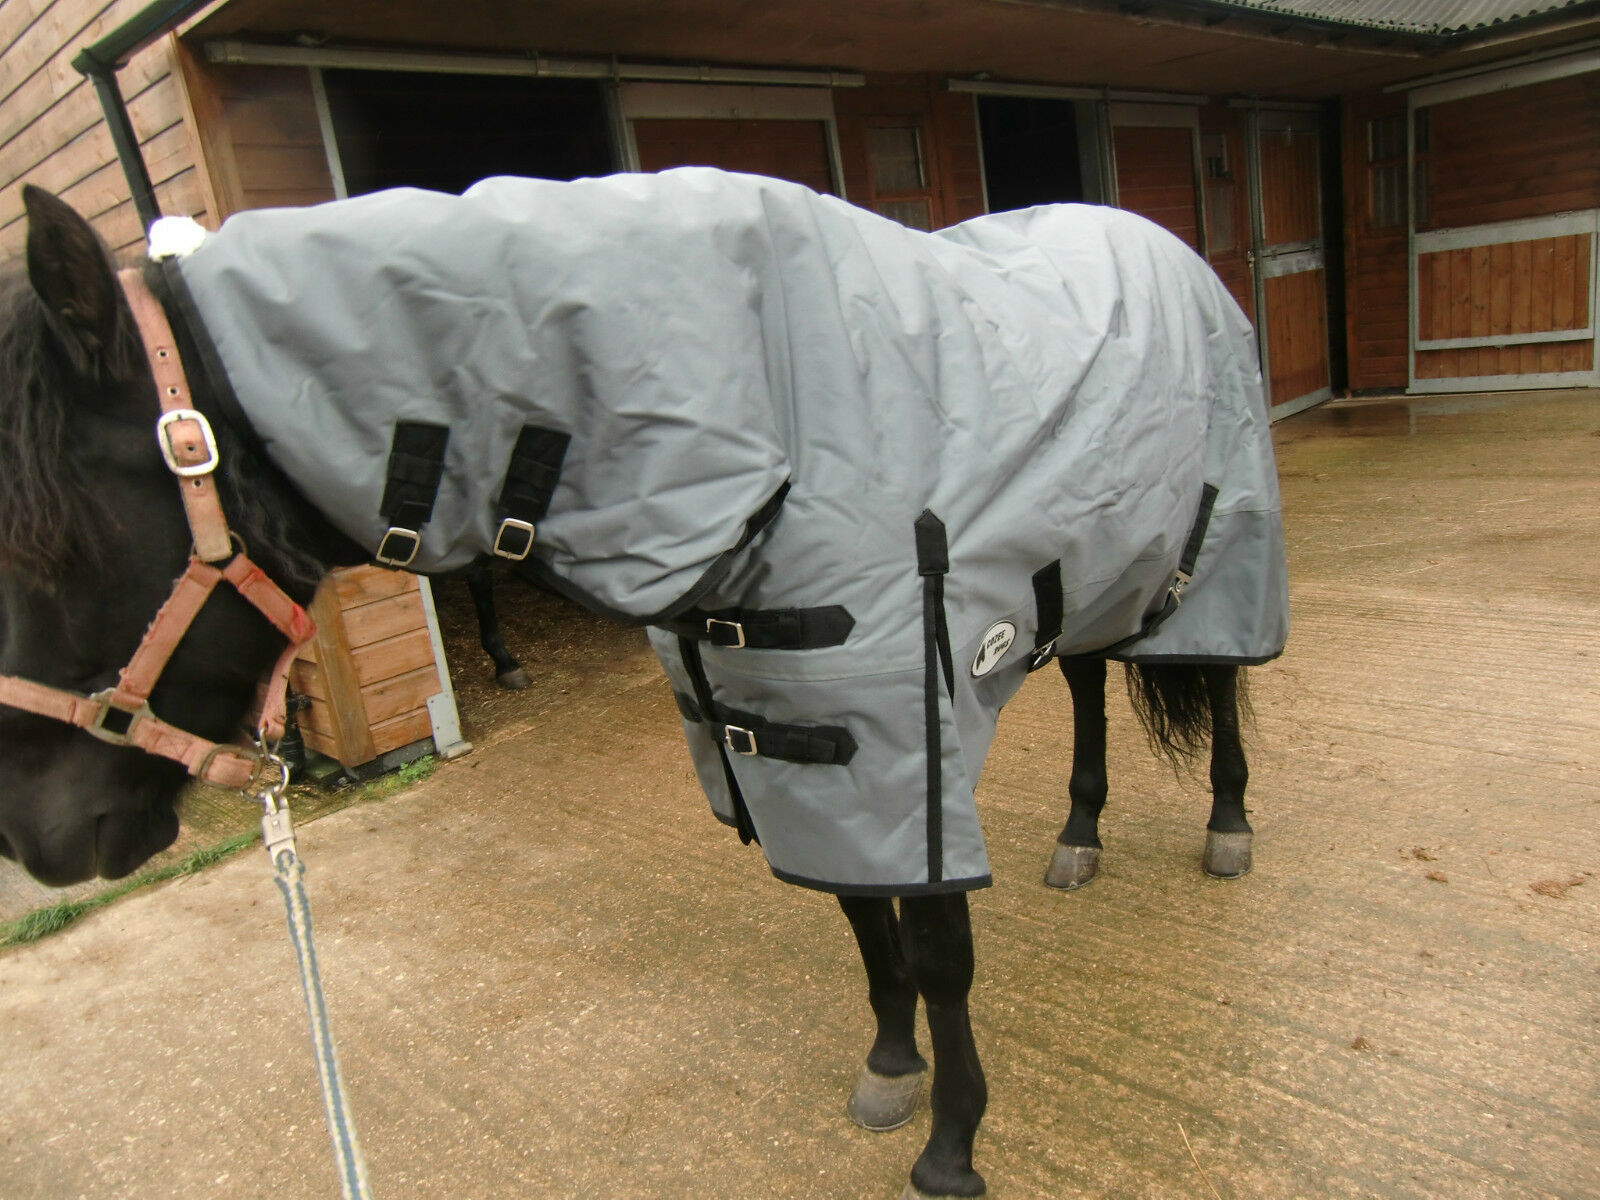 The Highland Heavy  Weight Combo  THUG RUG   1680d 300g fill. Reduced PRICE  up to 60% discount